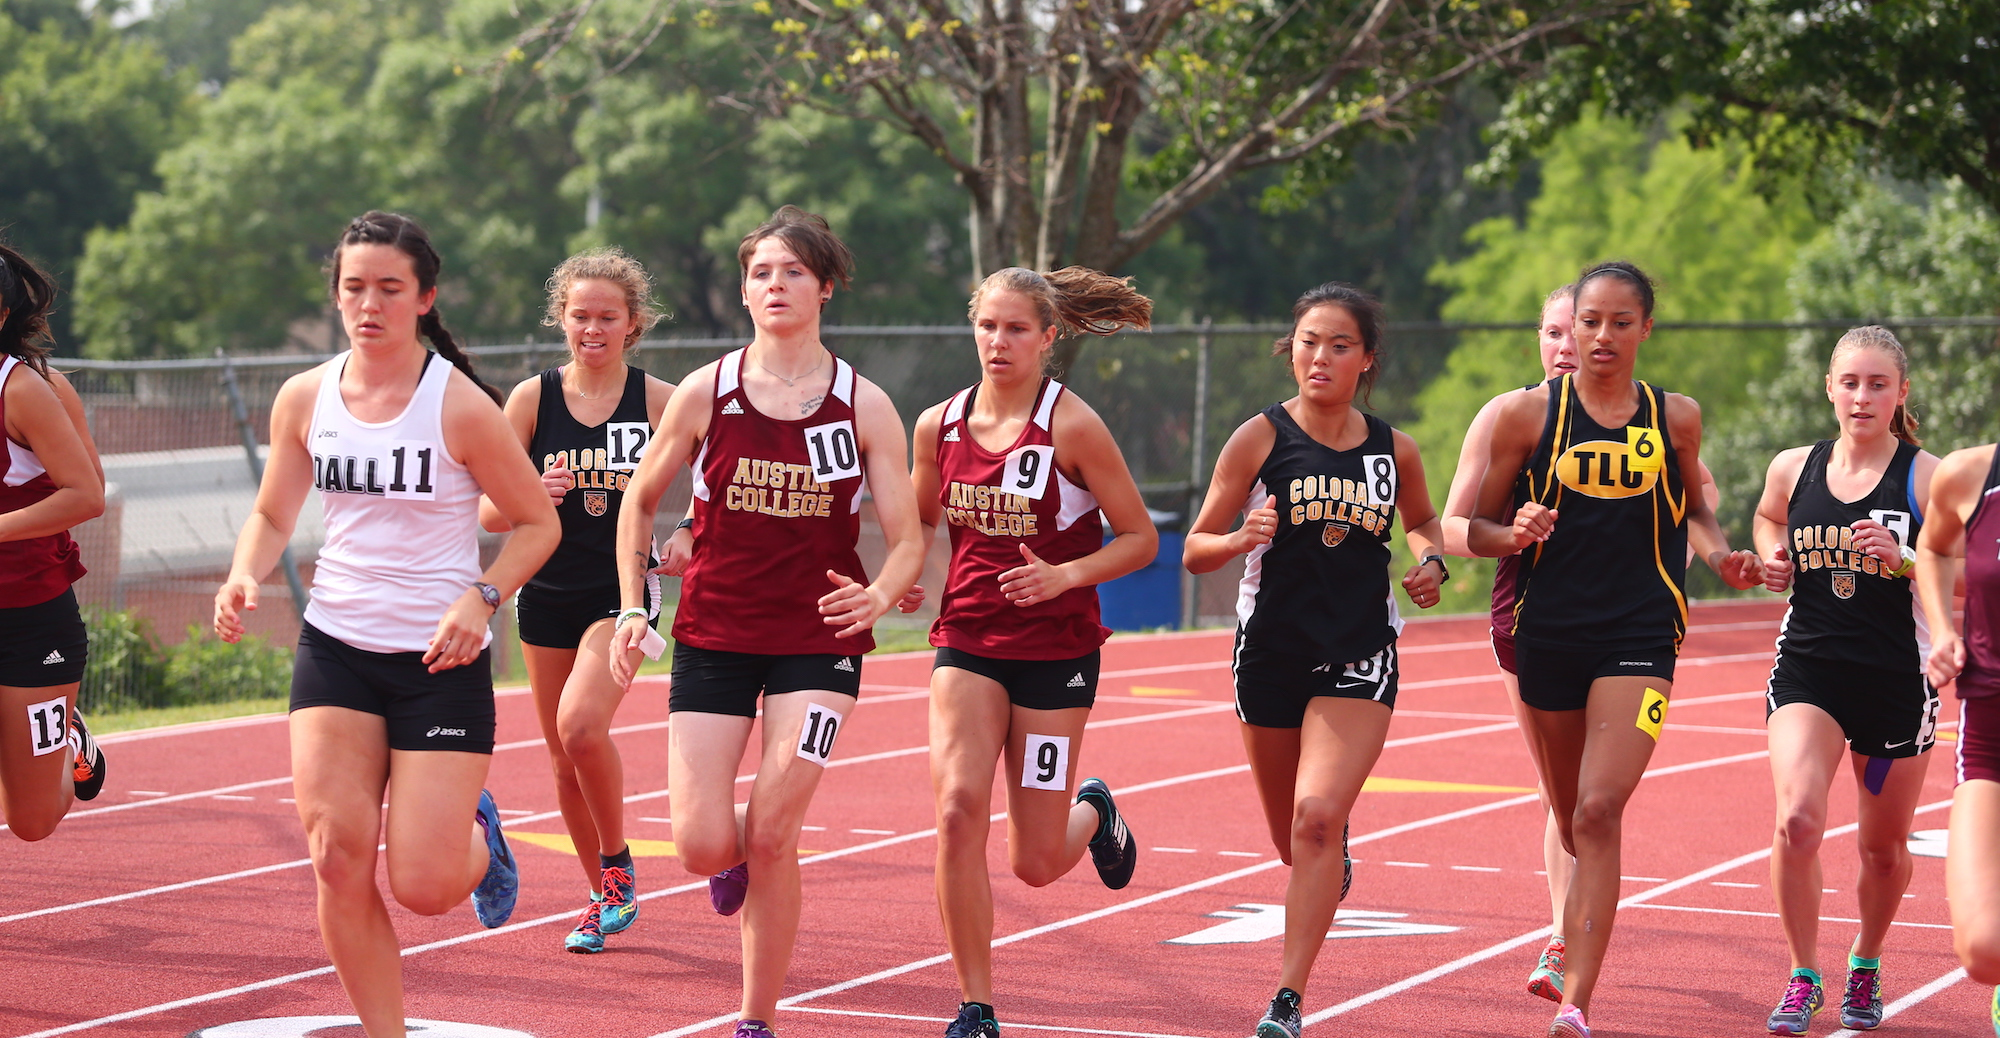 Program Records Fall for Distance Track at SCAC Championships